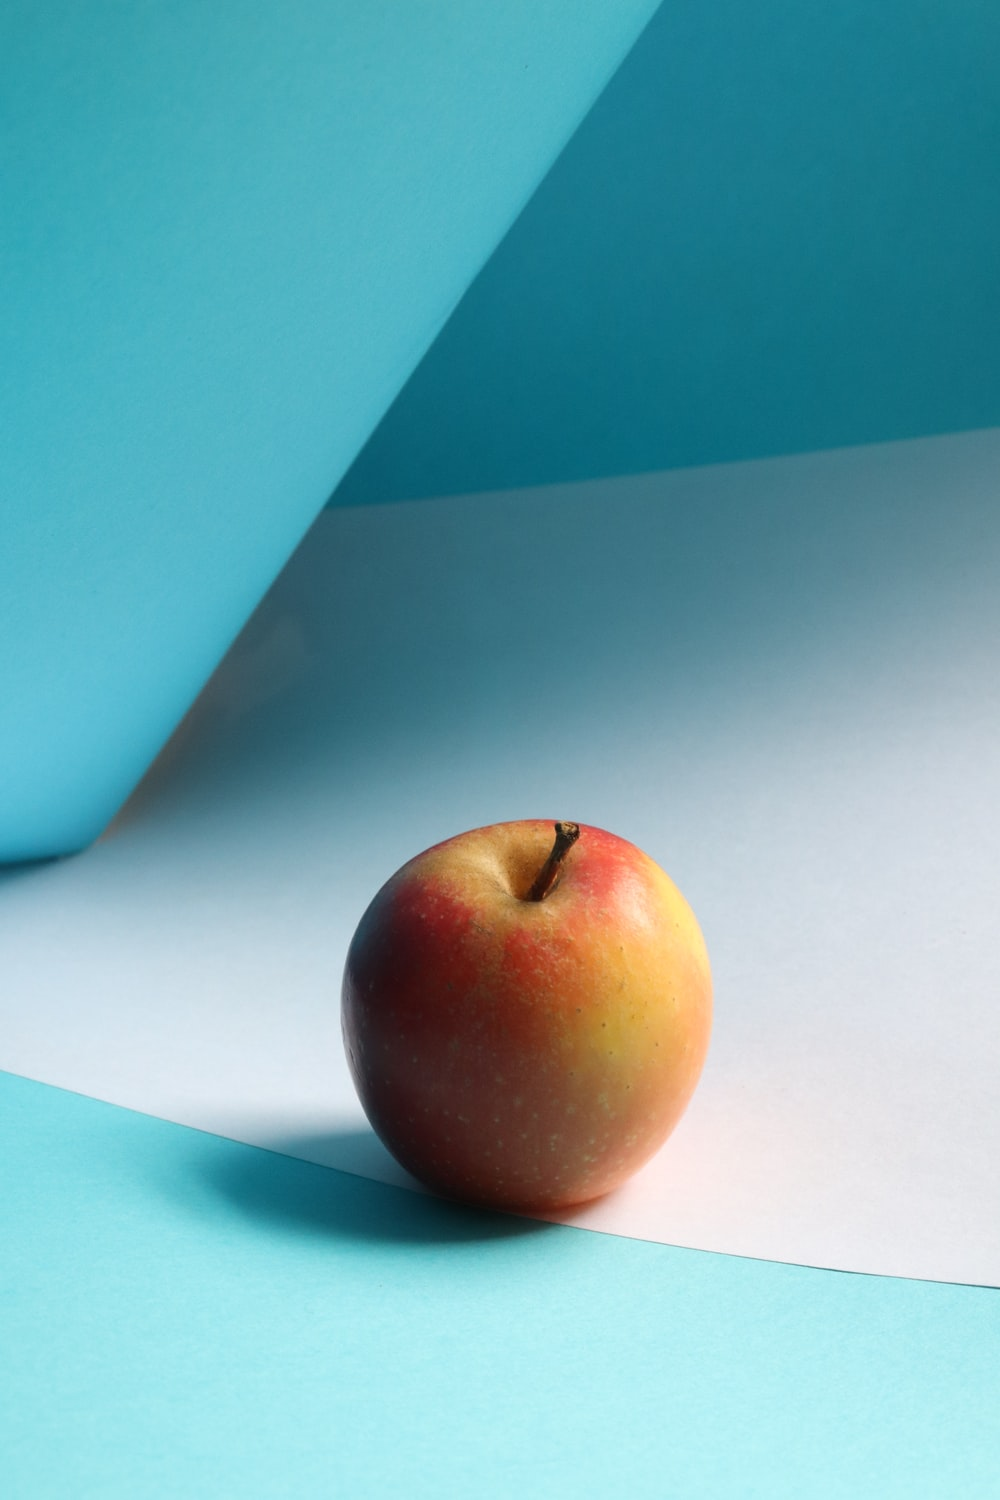 red apple fruit on white table